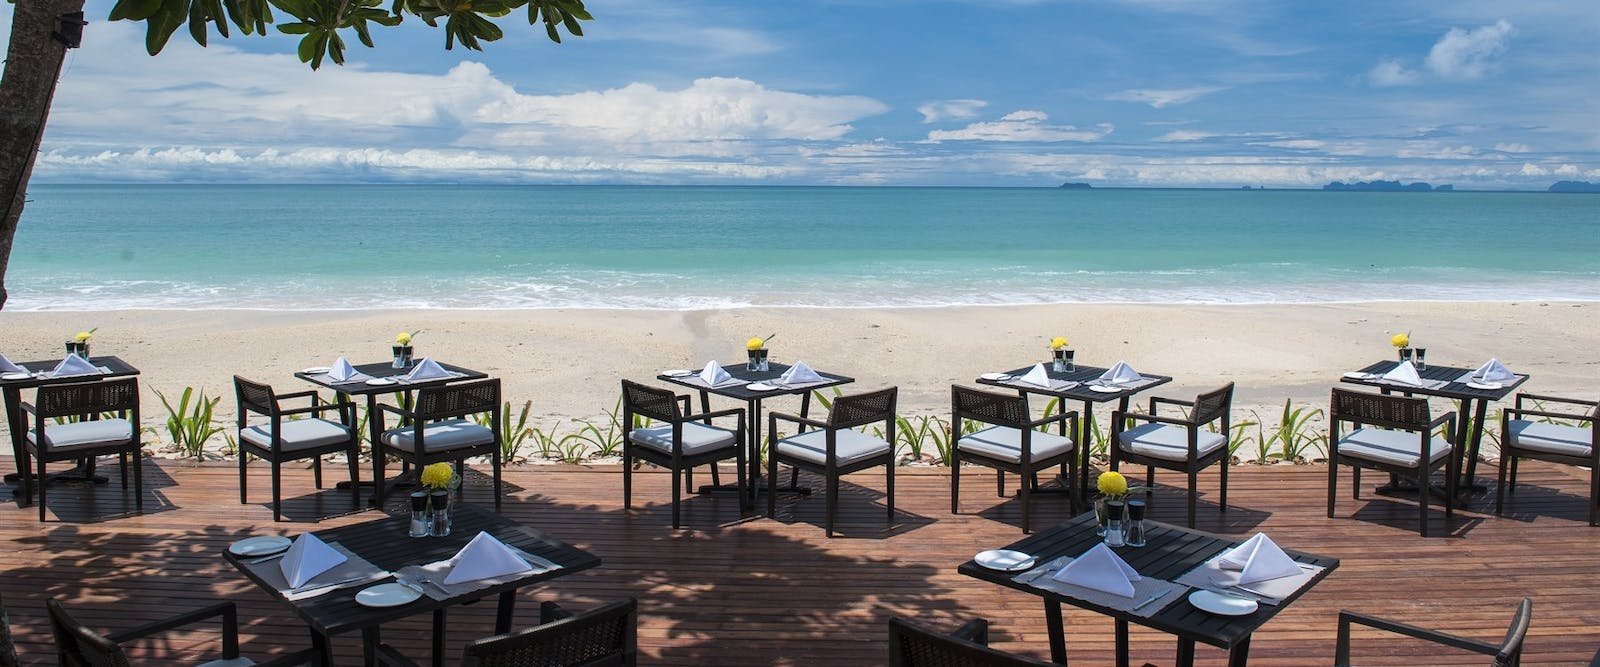 SeaSky Restaurant at Layana Resort & Spa Koh Lanta, Thailand